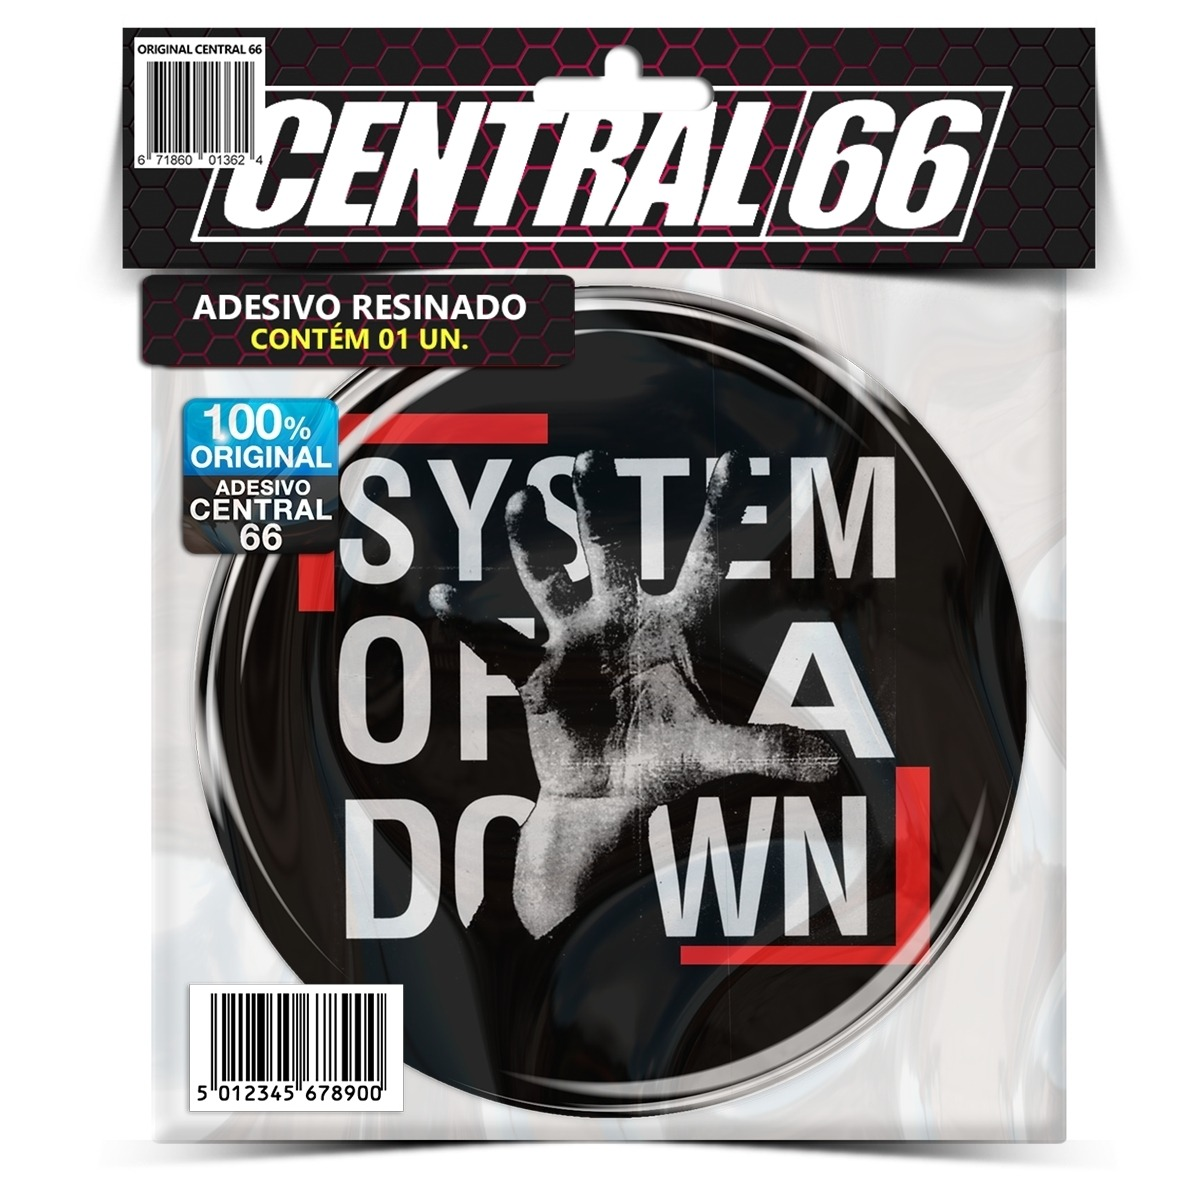 Adesivo Redondo System of a Down M02 – Central 66